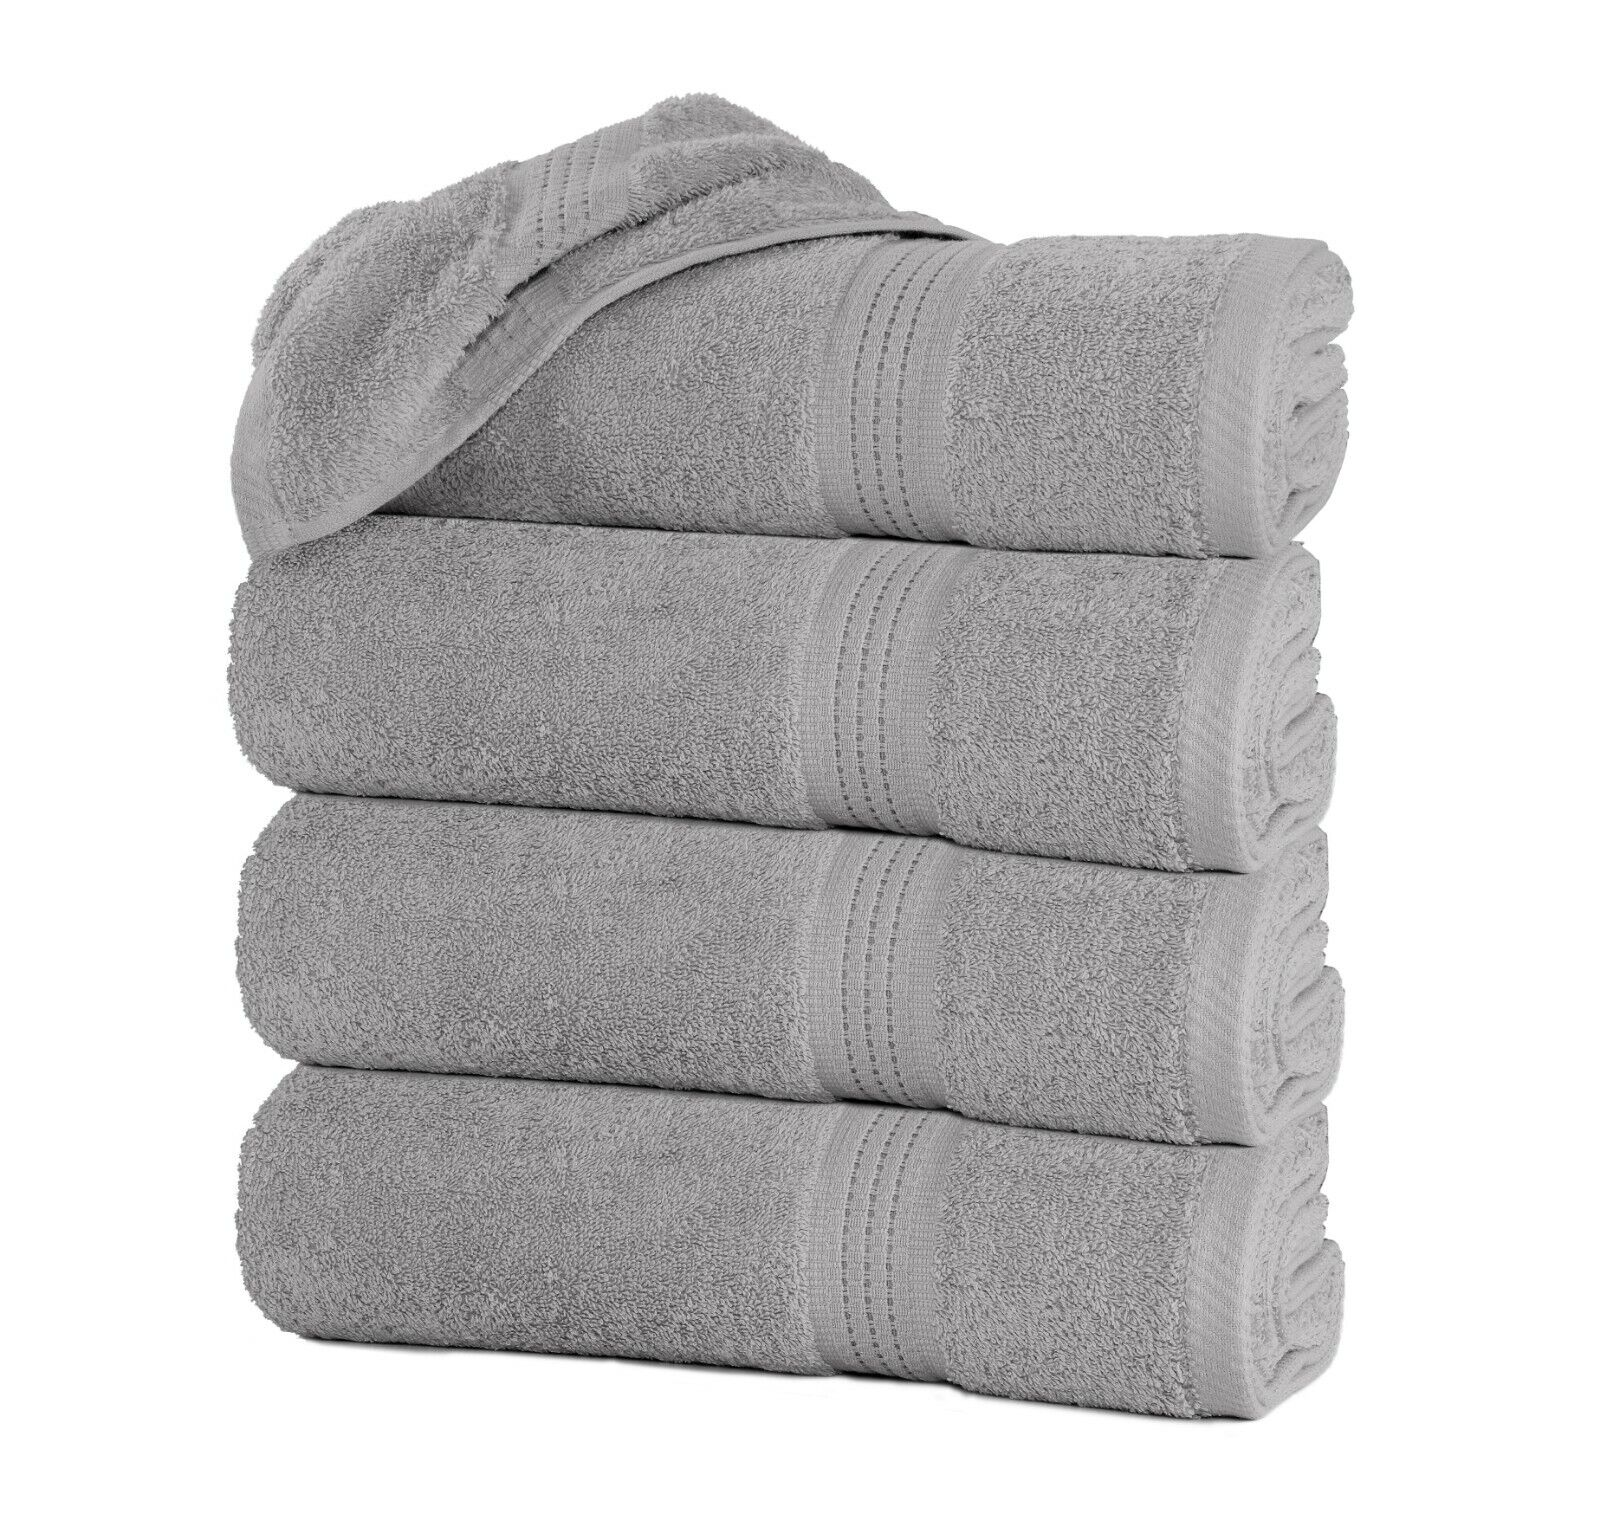 Bath Towels Sheets Set Ivory 2 Piece 35x70 Soft Hygro Cotton Absorbent NWT